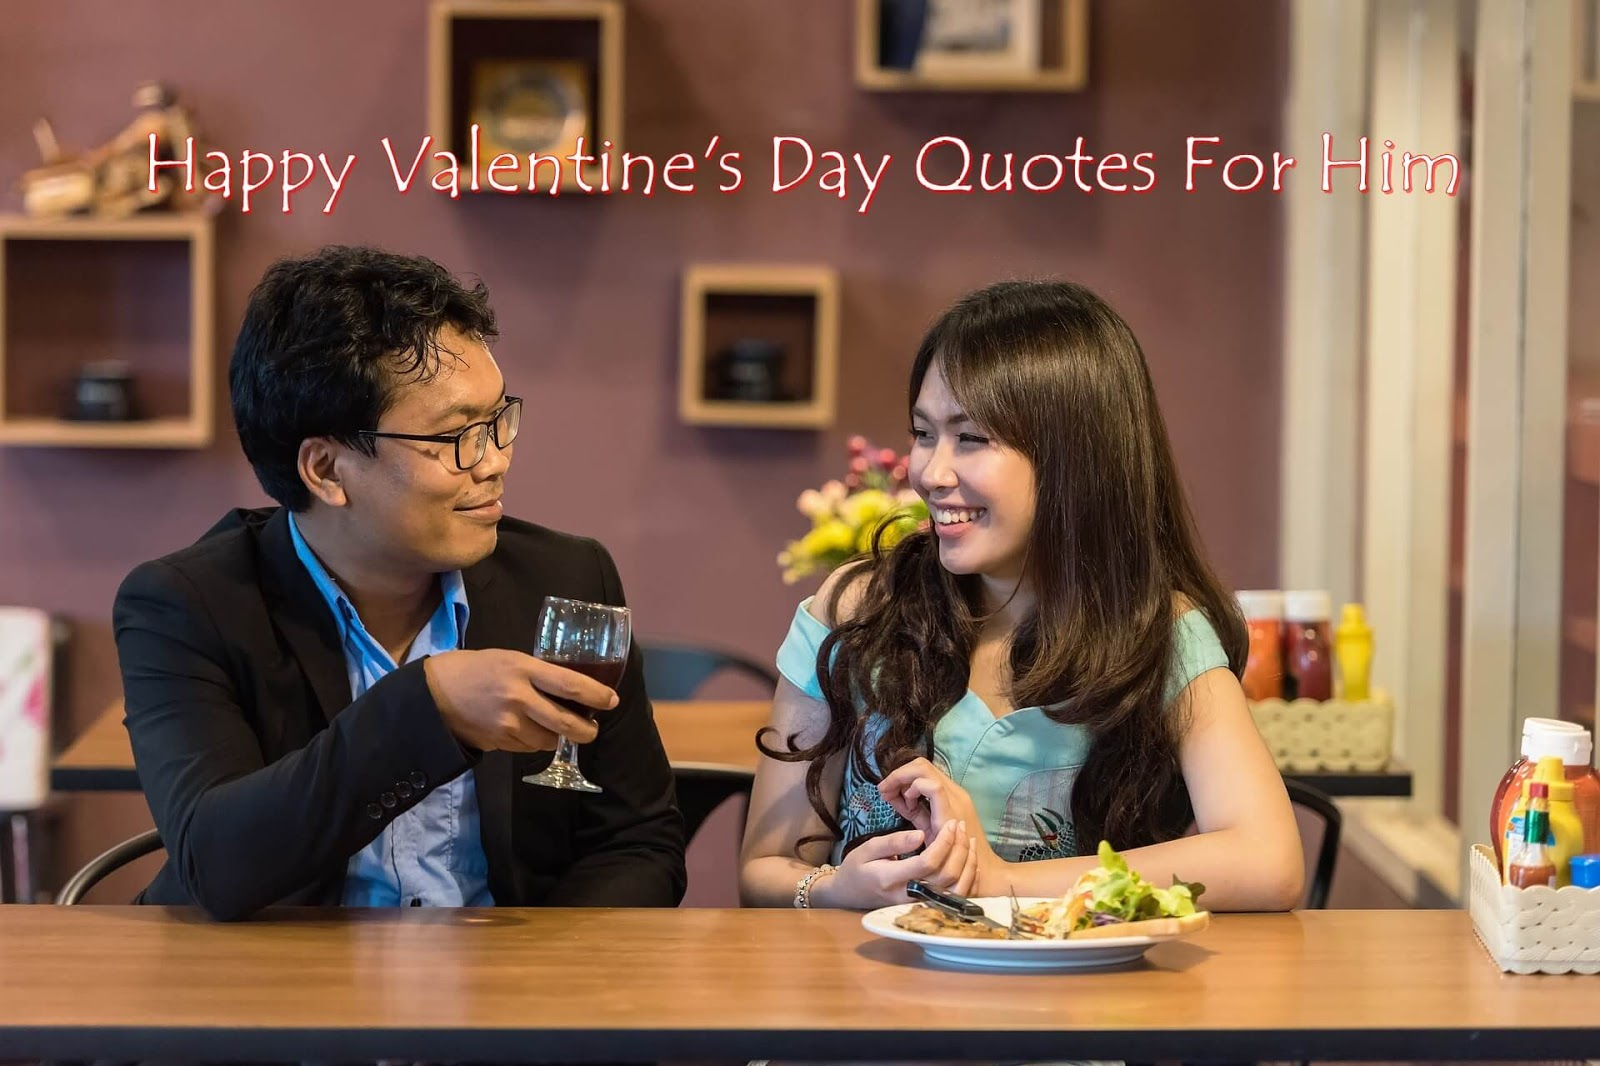 Happy Valentines Day Quotes for Him and Her